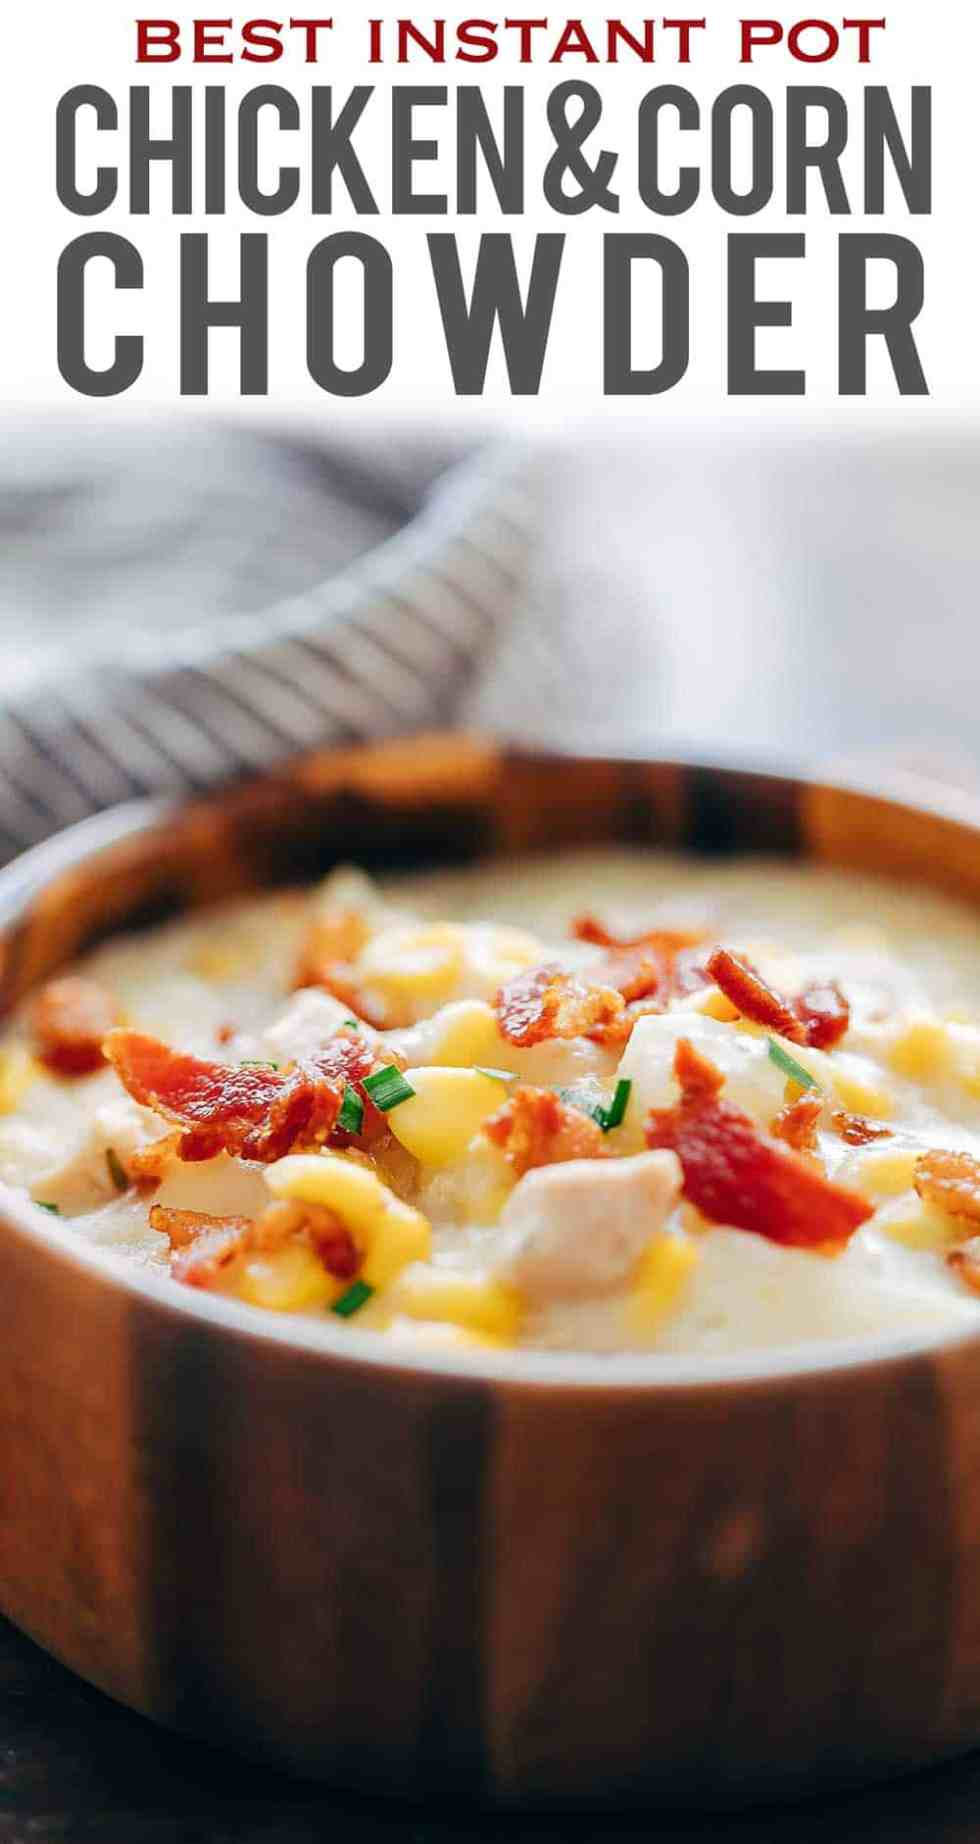 This Instant Pot chicken potato corn chowder with bacon is a delicious thick, creamy, hearty soup thats perfect comfort food for winter. Its a one pot meal, made easily in an electric pressure cooker or on the stovetop and takes about 30 minutes from start to finish. Can be made in a slow cooker or crockpot and can use shrimp too.